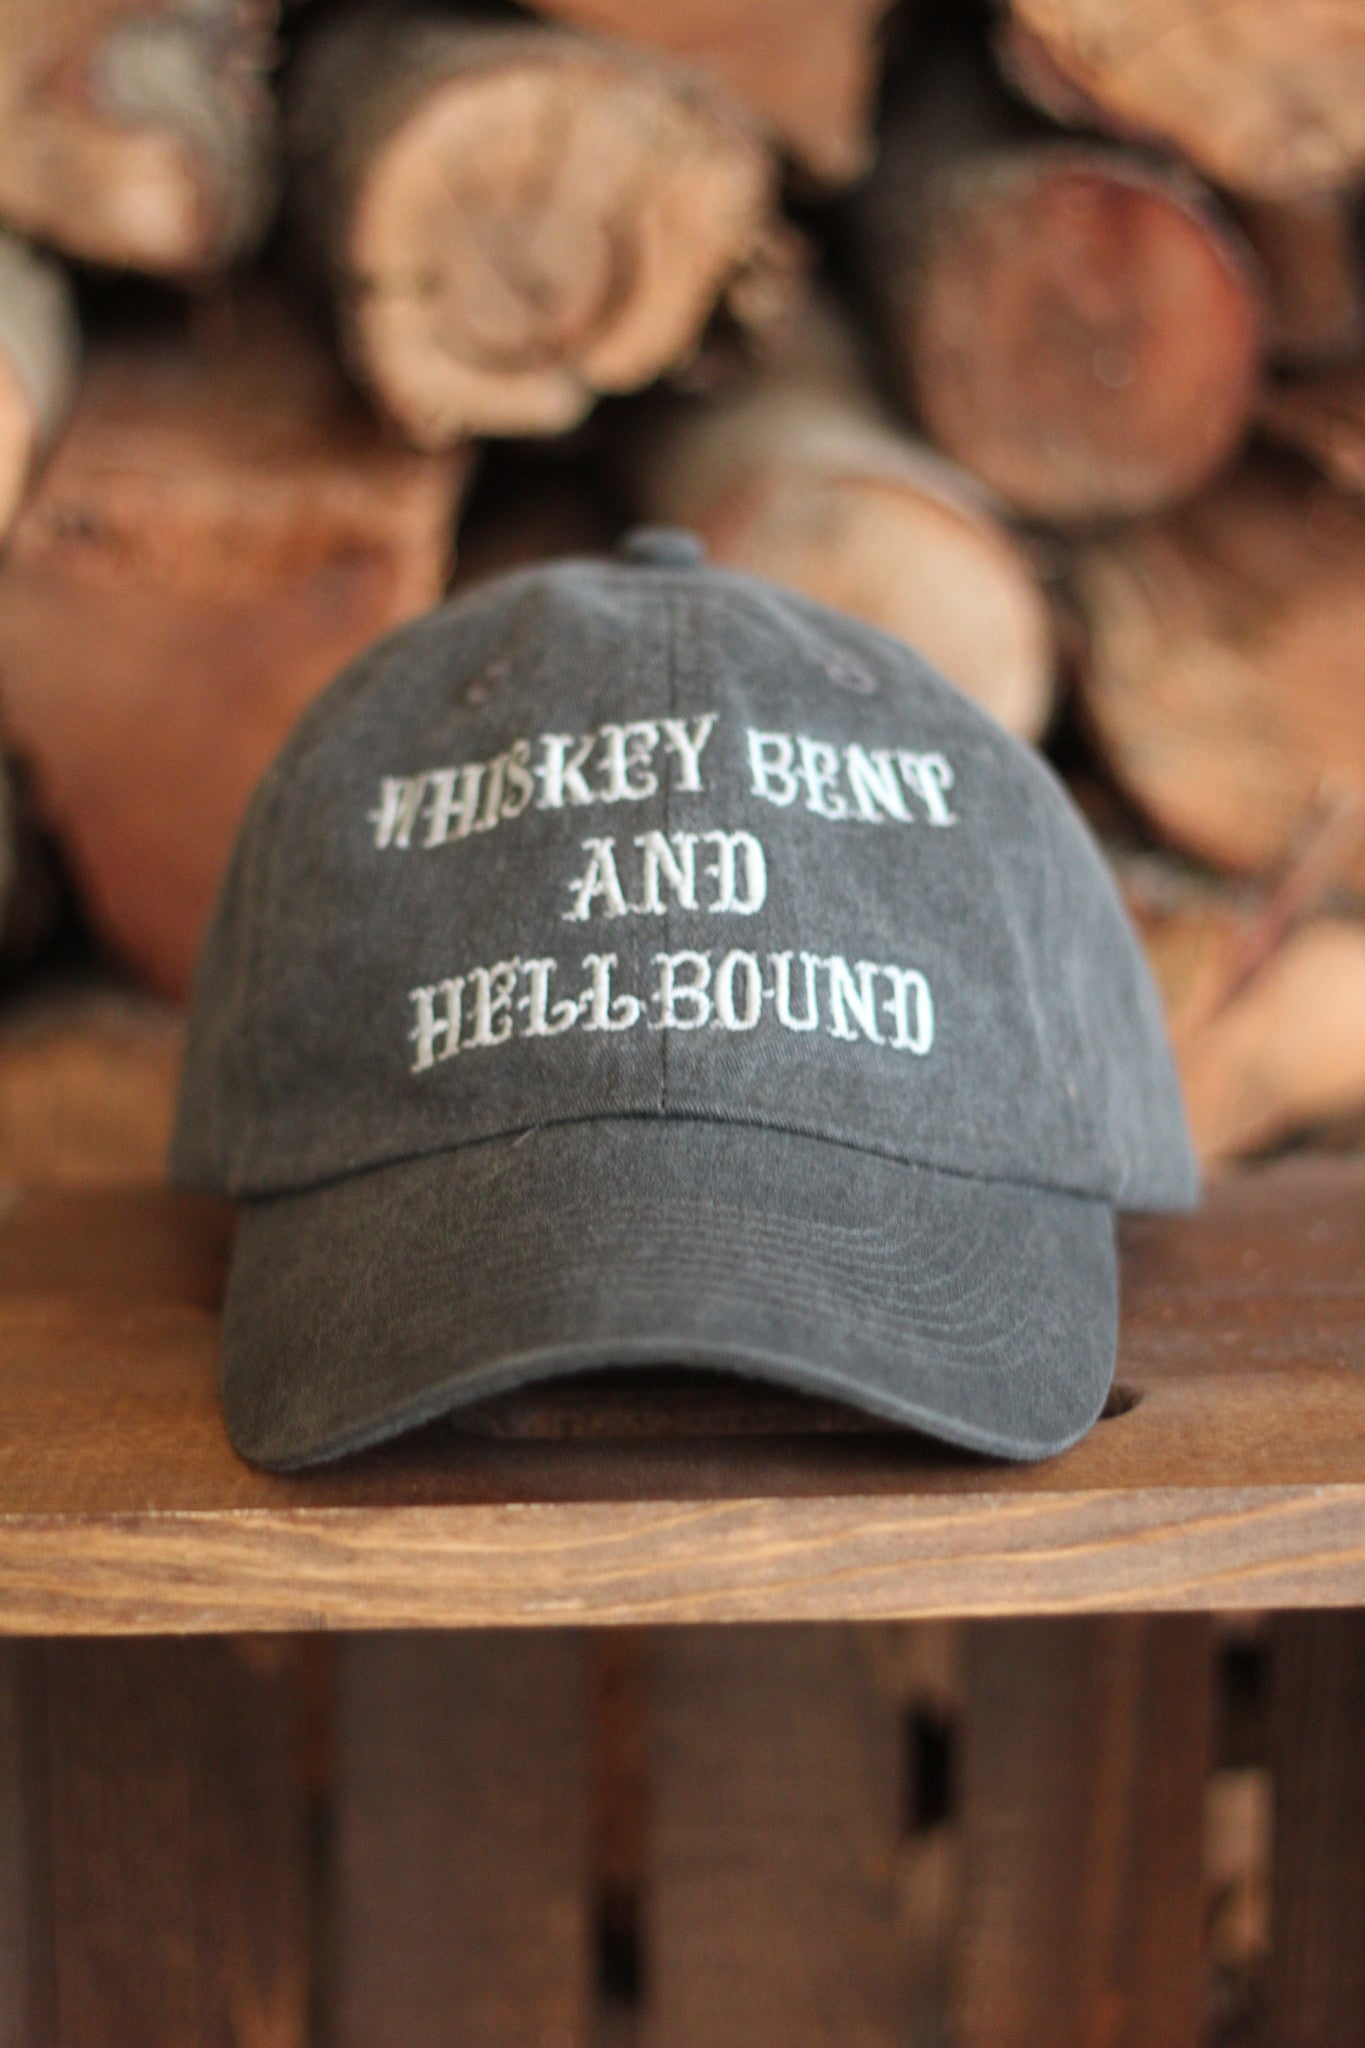 Whiskey Bent and Hellbound Hat Black